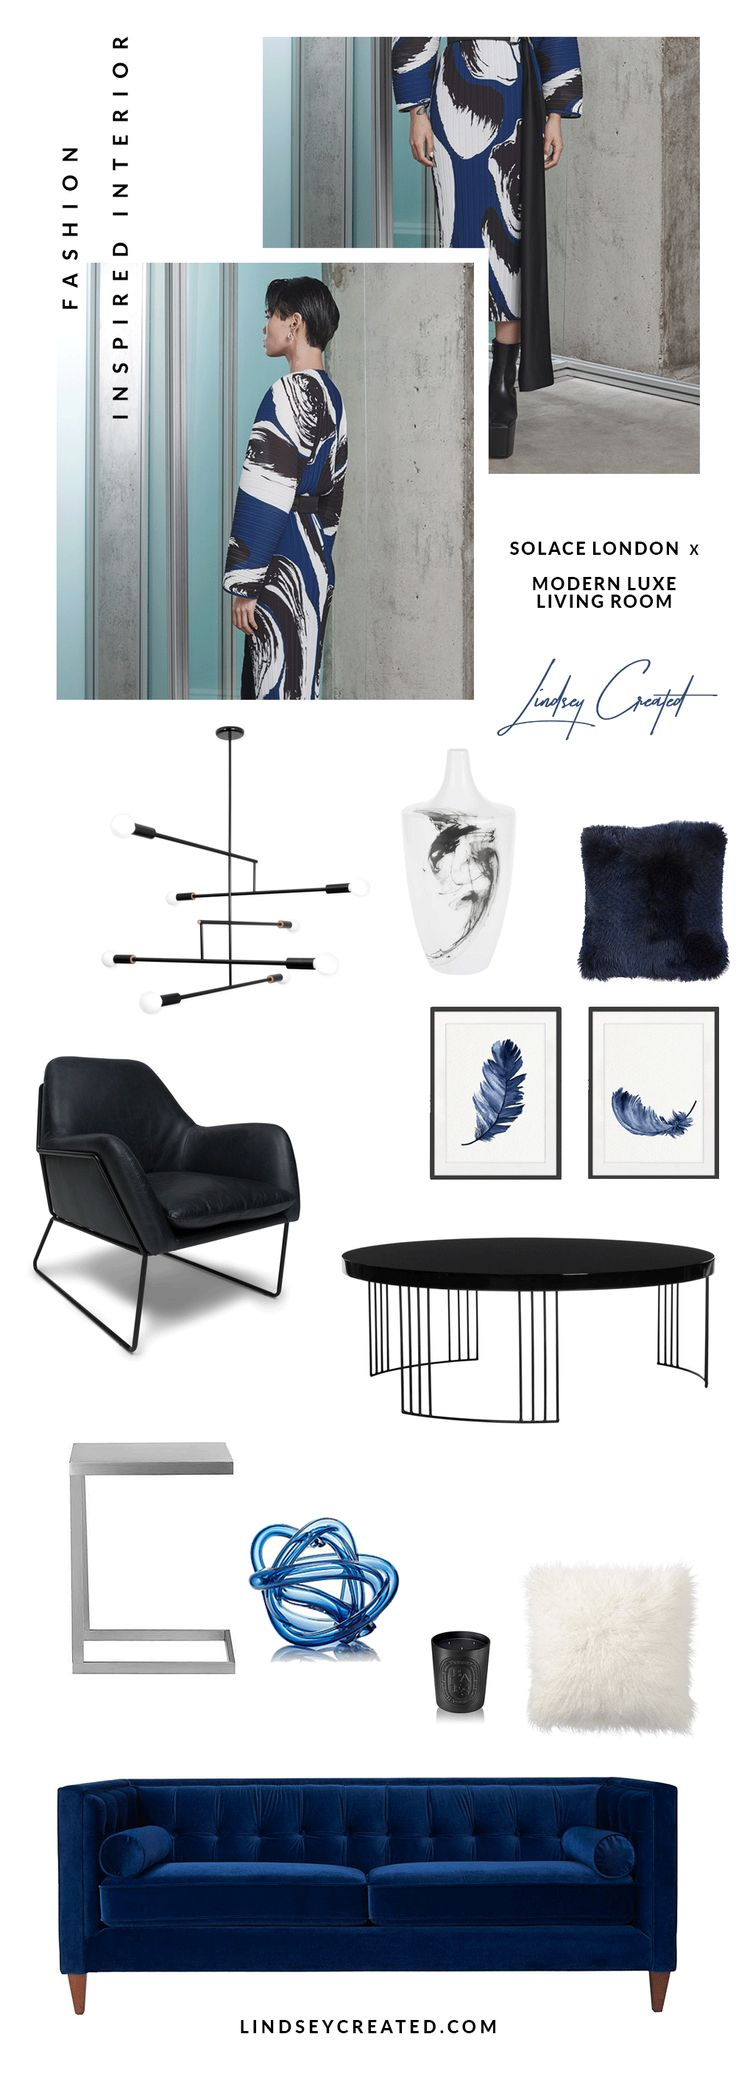 MODERN LUXE LIVING ROOM ITEMS: Solace London Else Dress ($565) | 5-ArmMobile Light ($2,000) | Ink Stain Vase ($93) | Rani Arabella Navy Fur Pillow ($995) | Forma Charme Black Leather Chair …